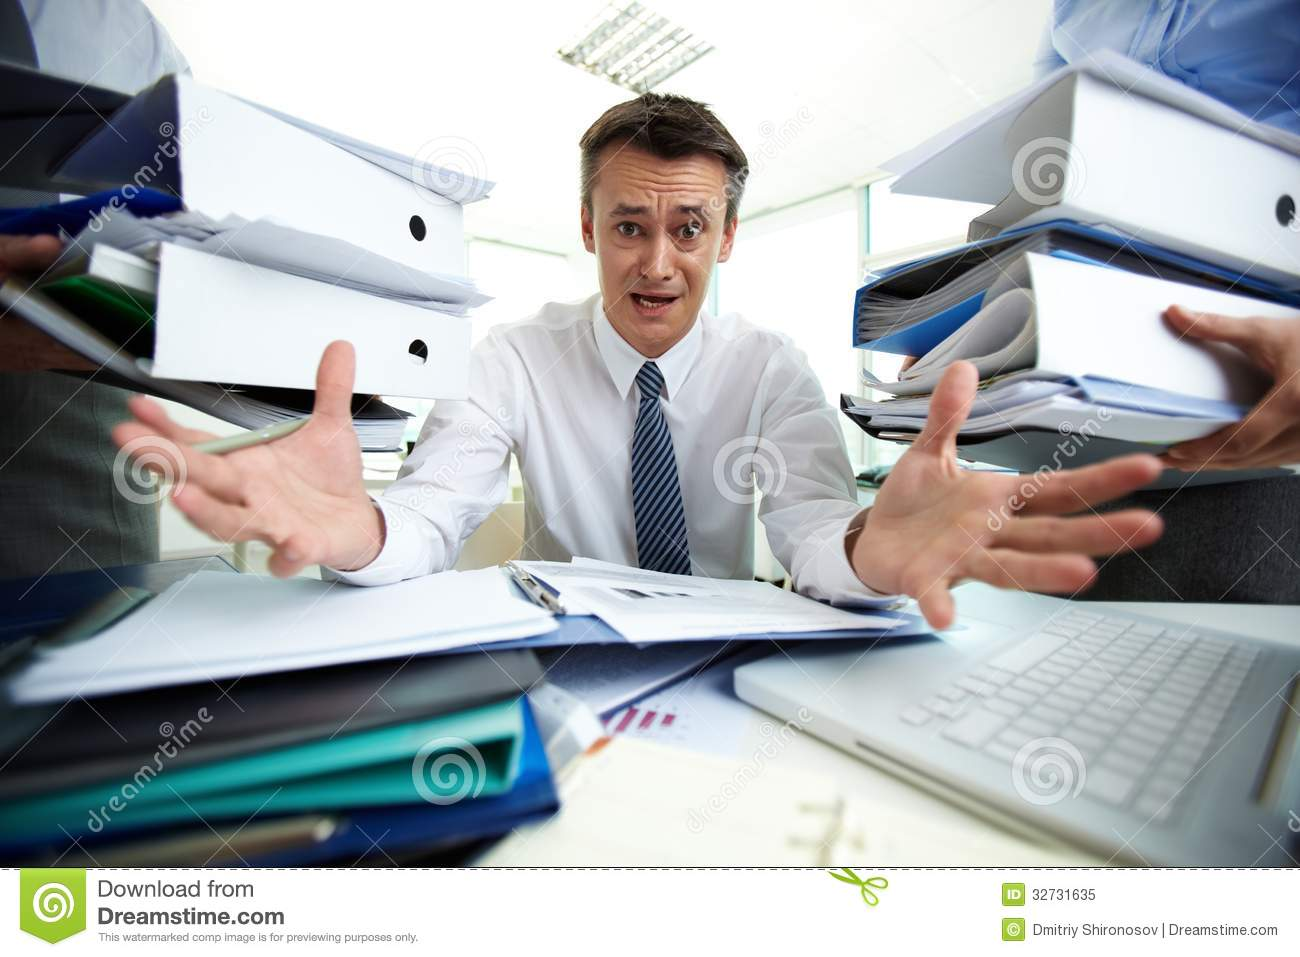 Overloaded With Paperwork Royalty Free Stock Photo - Image ...